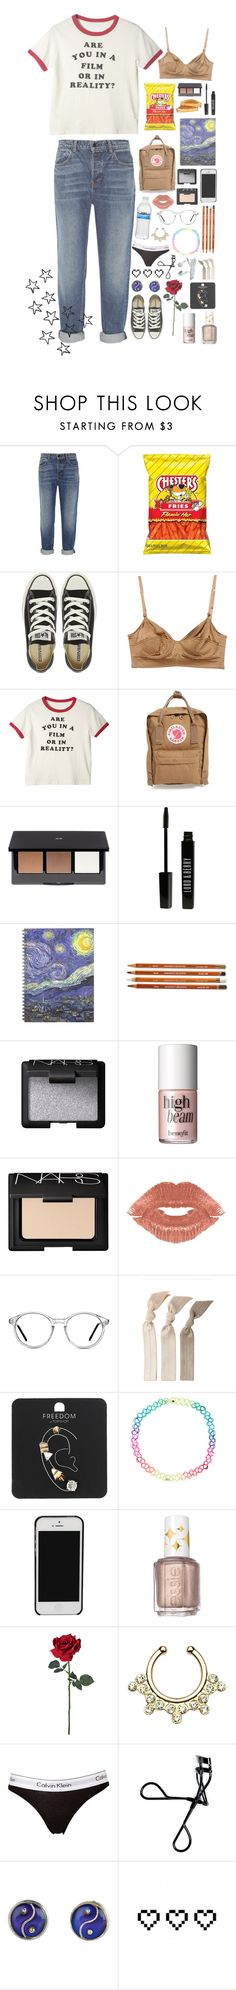 """""""One direction school//prt.2 (desc.)"""" by rosita562 ❤ liked on Polyvore featuring Alexander Wang, Converse, Ermanno Scervino, Fjällräven, H&M, Lord & Berry, NARS Cosmetics, Benefit, Manic Panic NYC and GlassesUSA"""